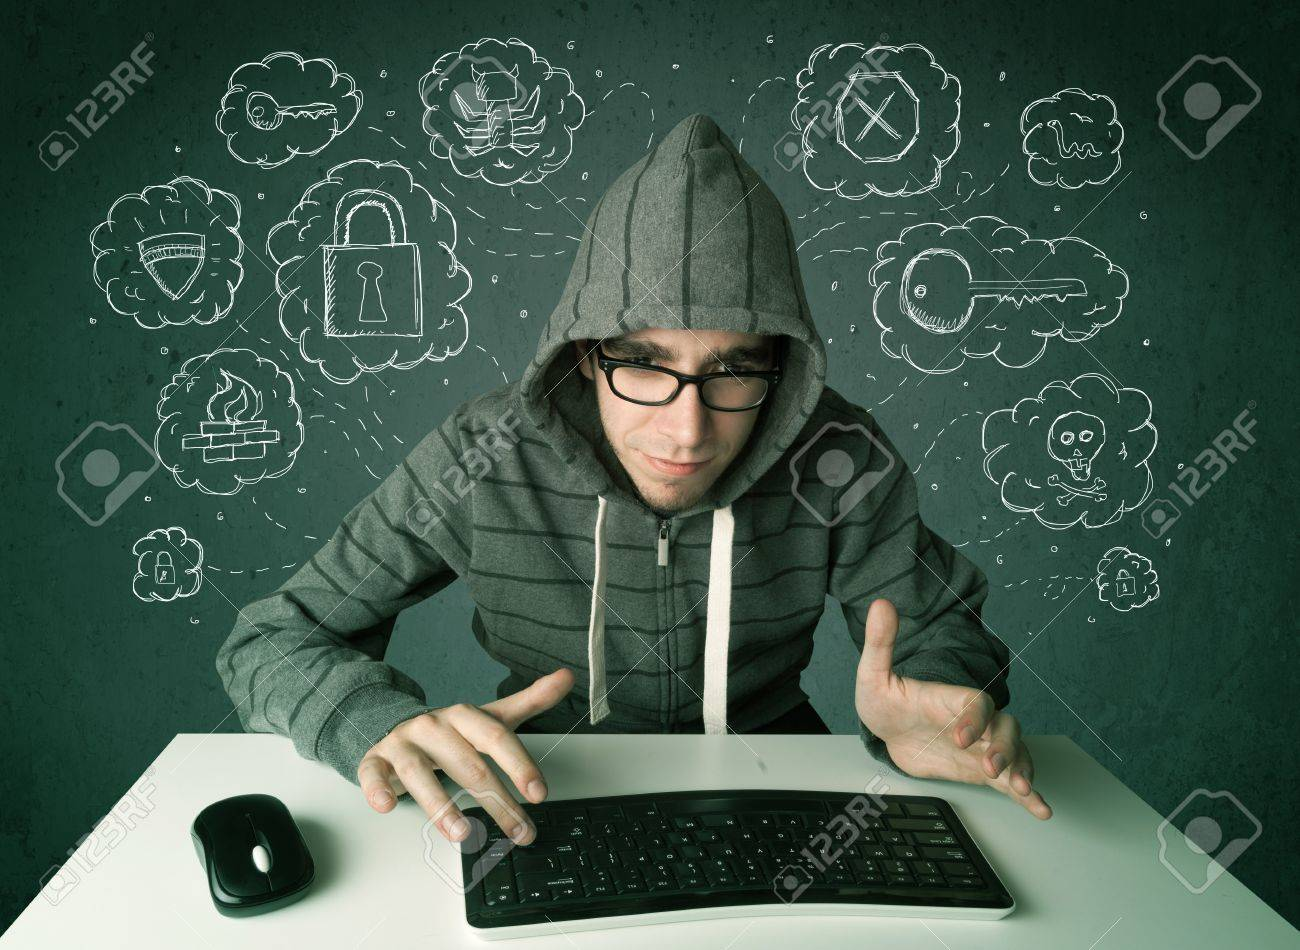 Young nerd hacker with virus and hacking thoughts on green background Stock Photo - 21740126